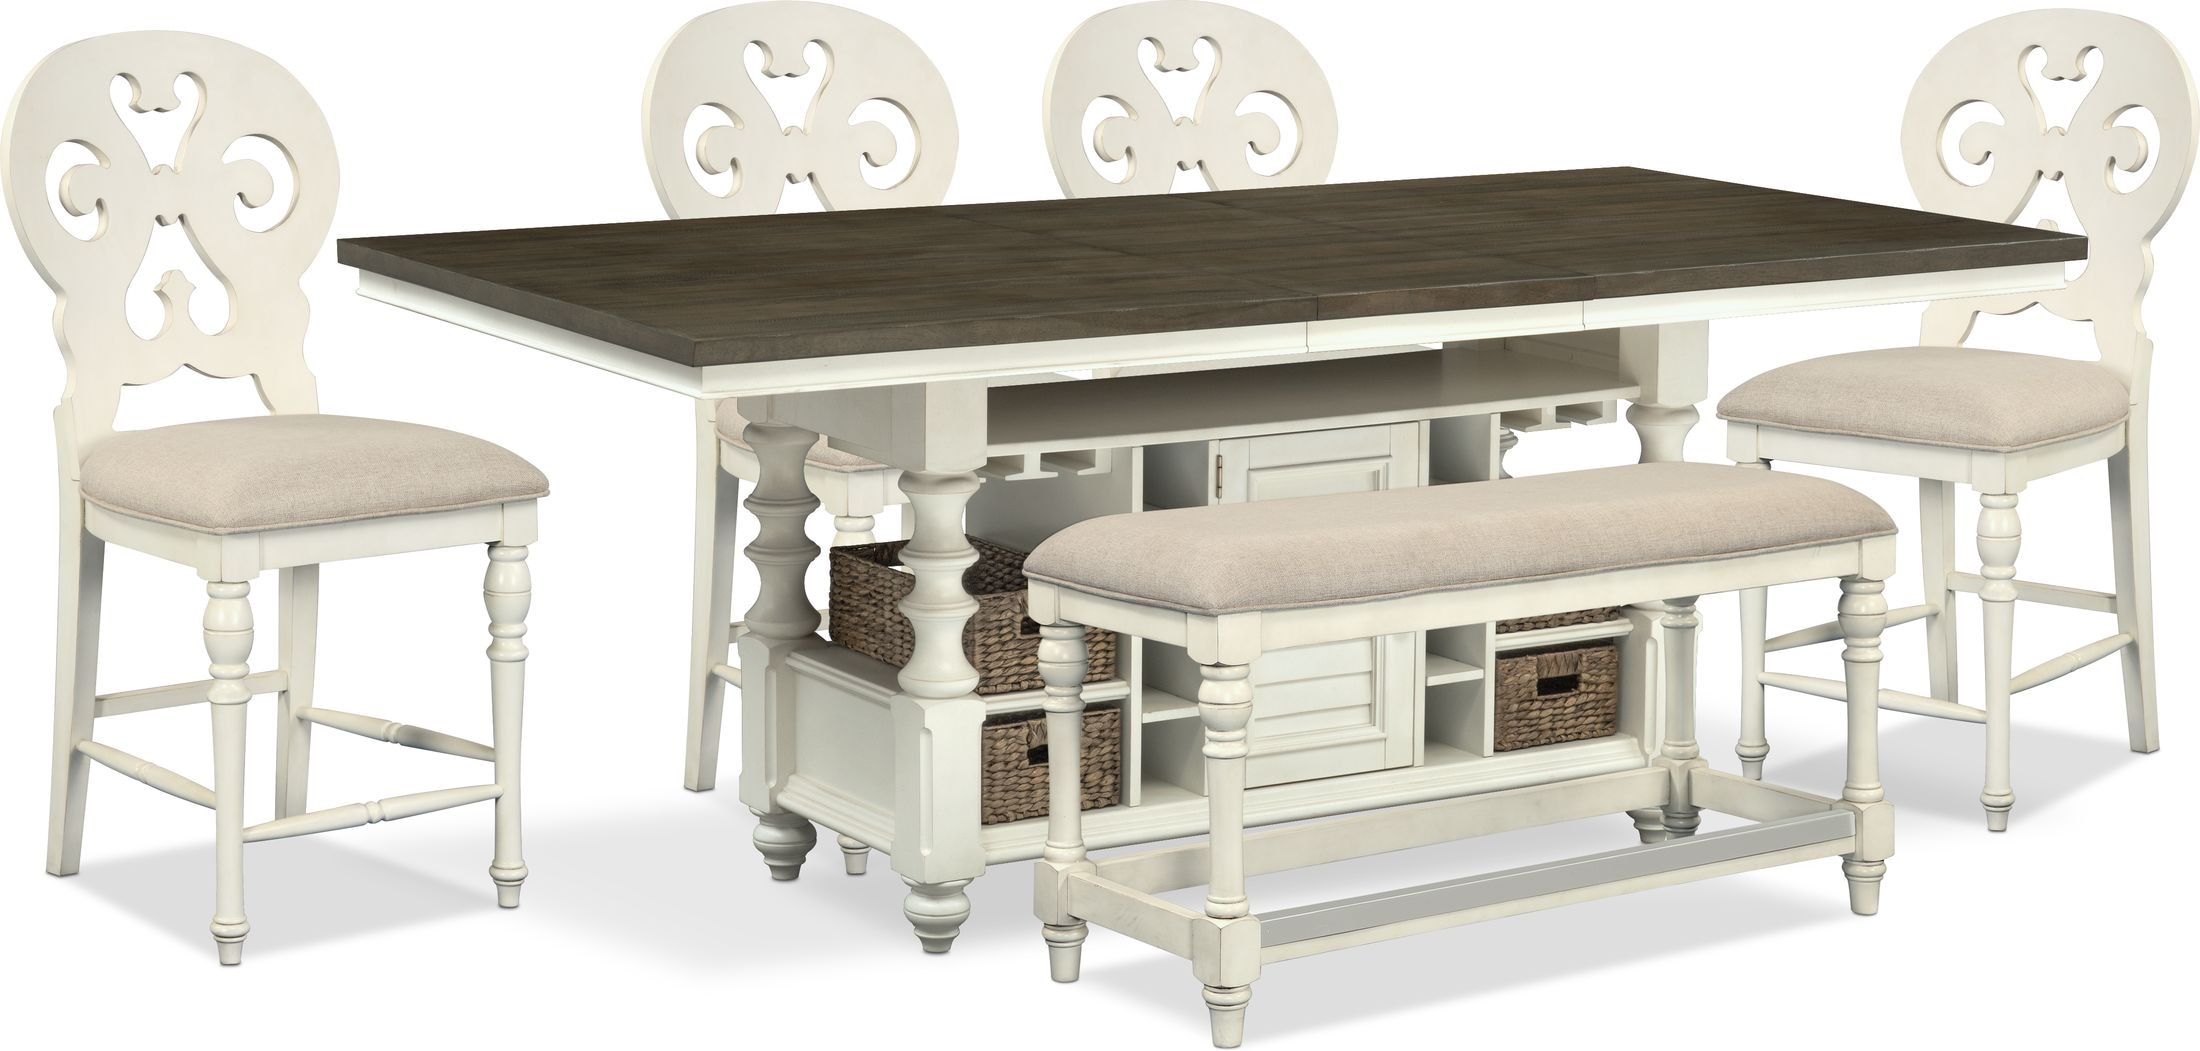 Dining Room Furniture - Charleston Counter-Height Dining Table, 4 Scroll-Back Stools and Bench